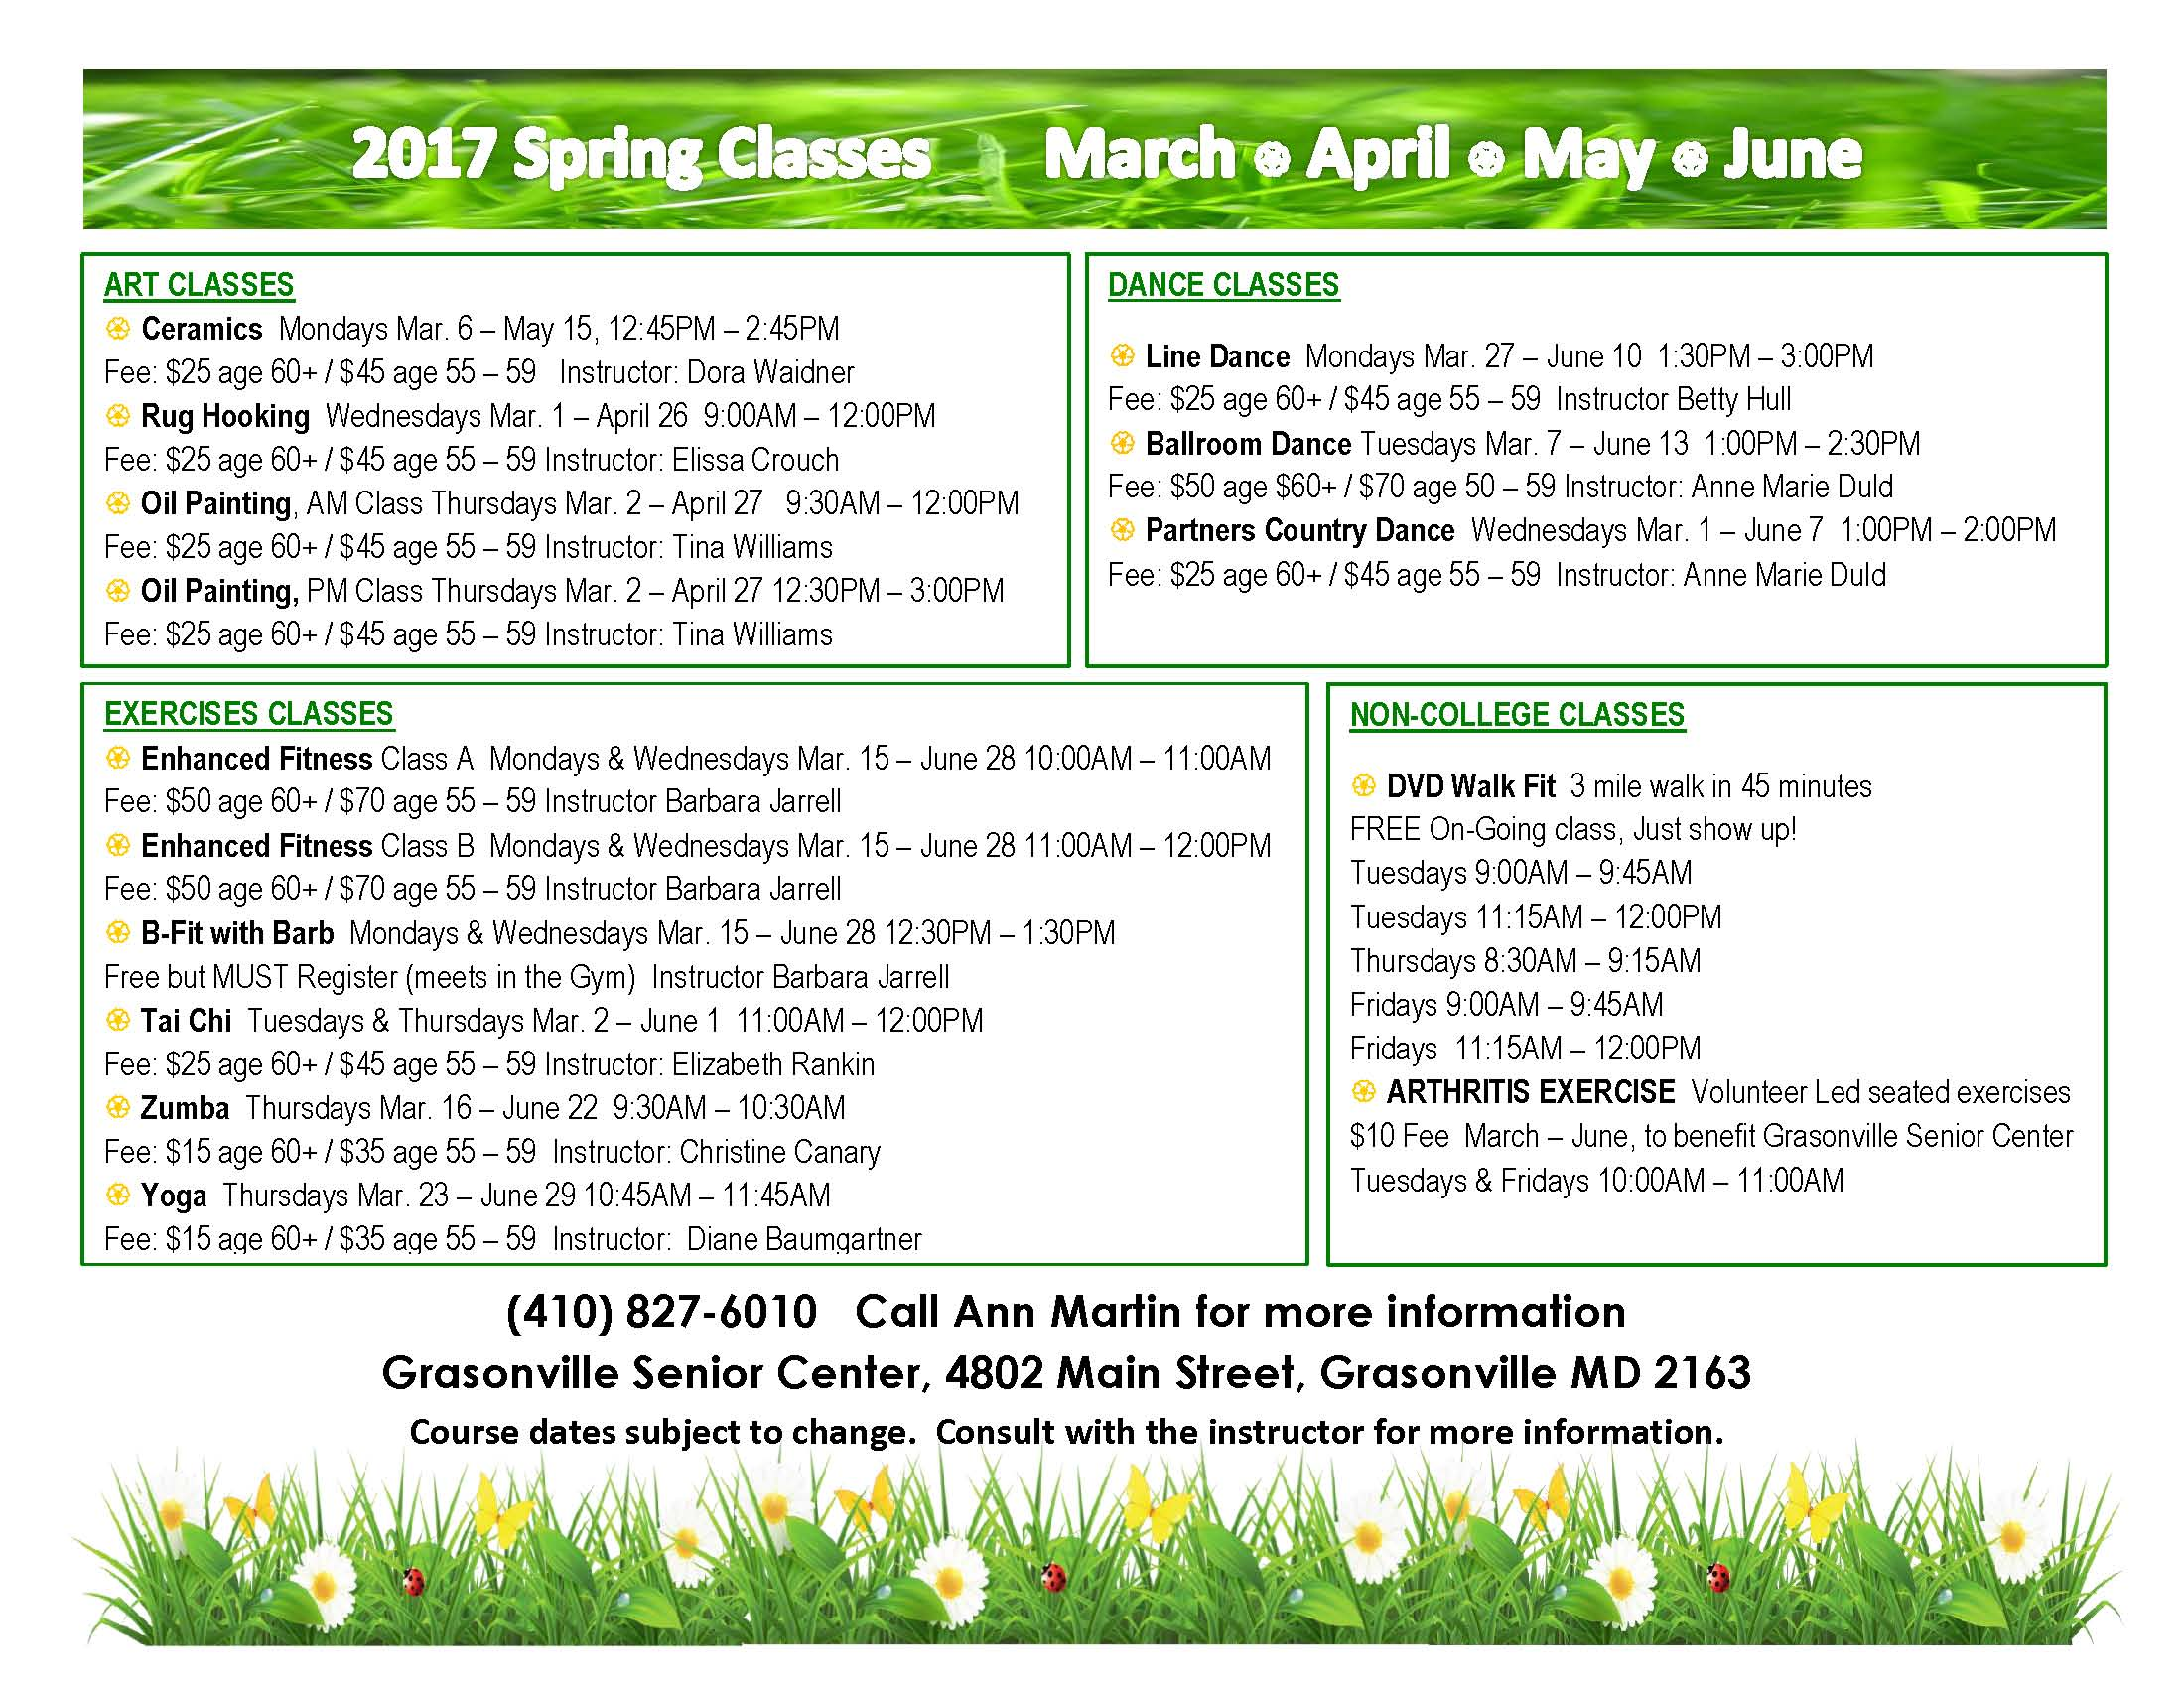 2017 Spring Classes flyer